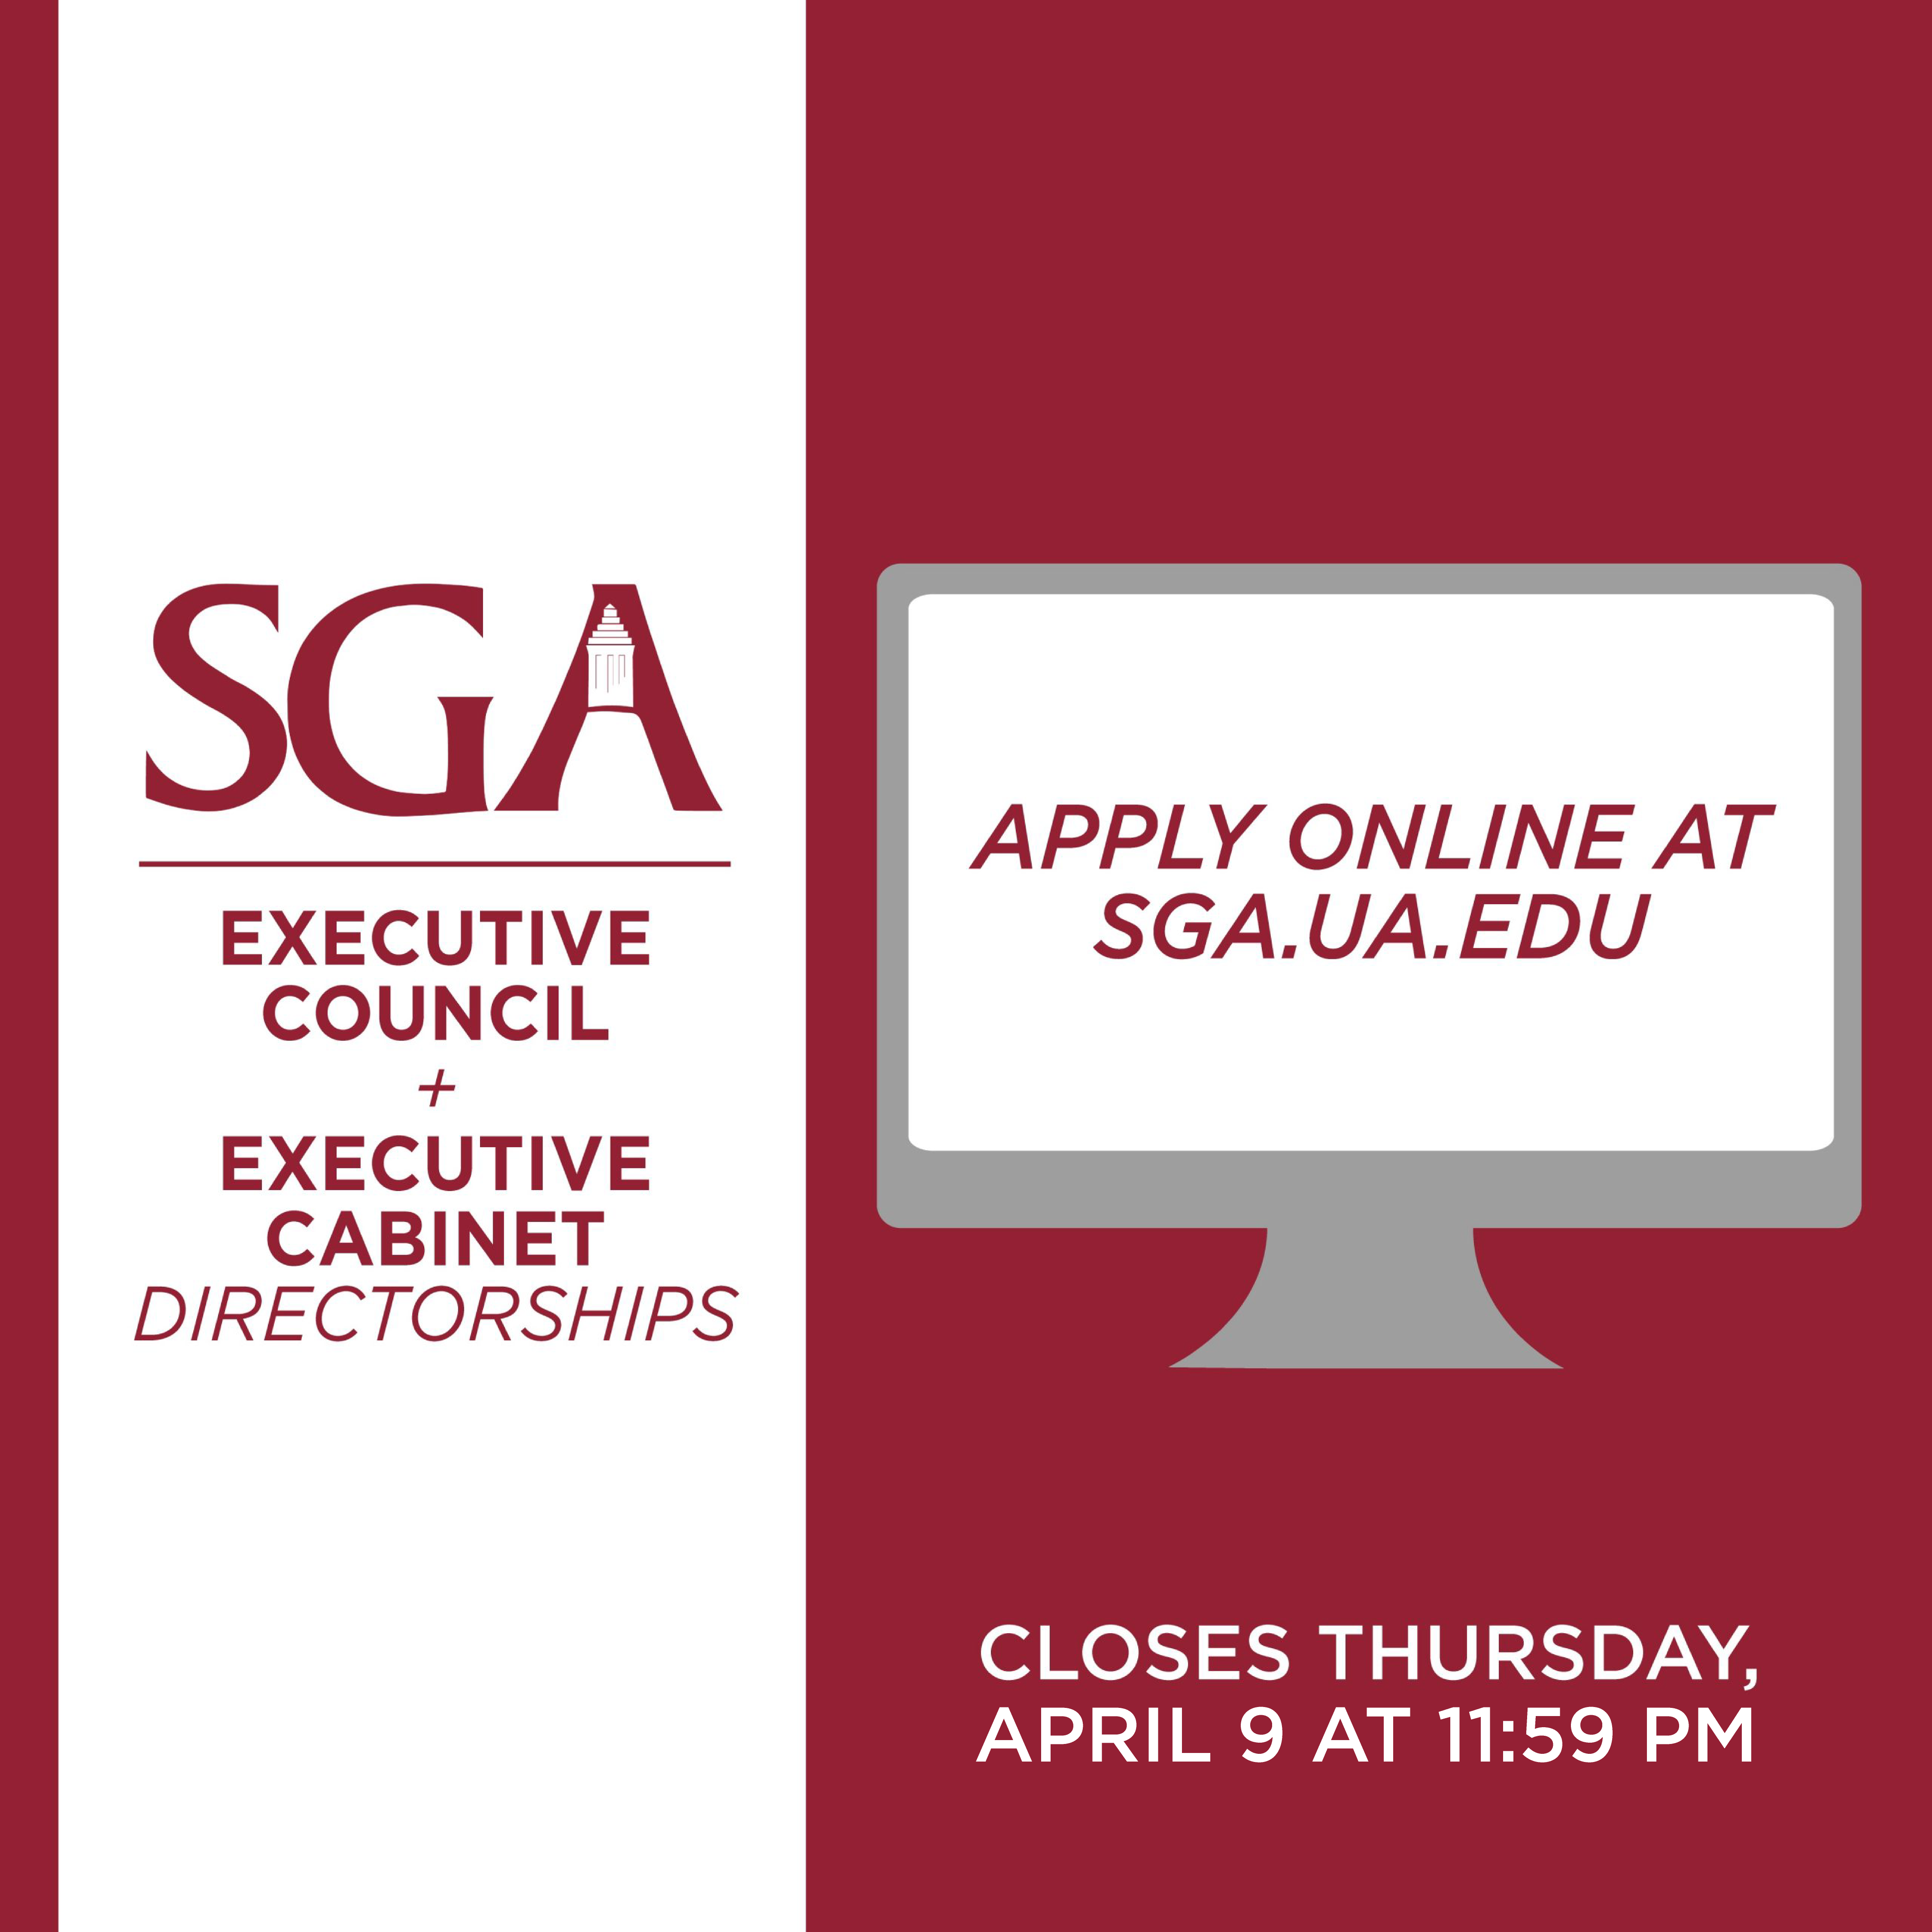 SGA Executive Council and Cabinet Directorships Application Apply here! Open until April 2nd at 11:59pm